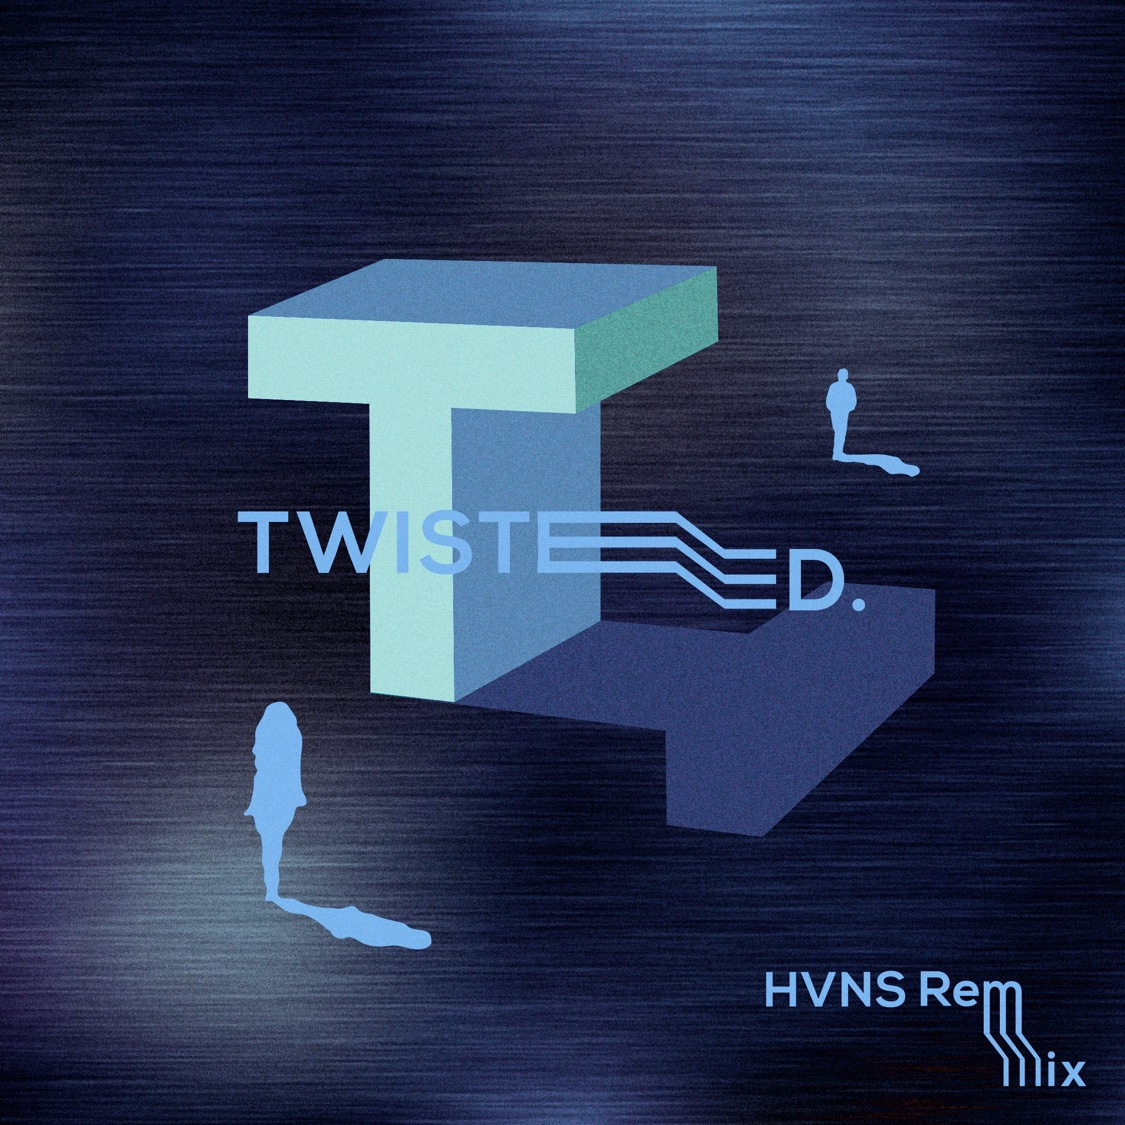 #NowPlaying  #Dance  #MqNax  Twisted HVNS Remix - 4:39 #INTERSECTION  Twisted (#HVNS  Remix) - Single Nov 27, 2019 :  https://apple.co/2rzhOKc